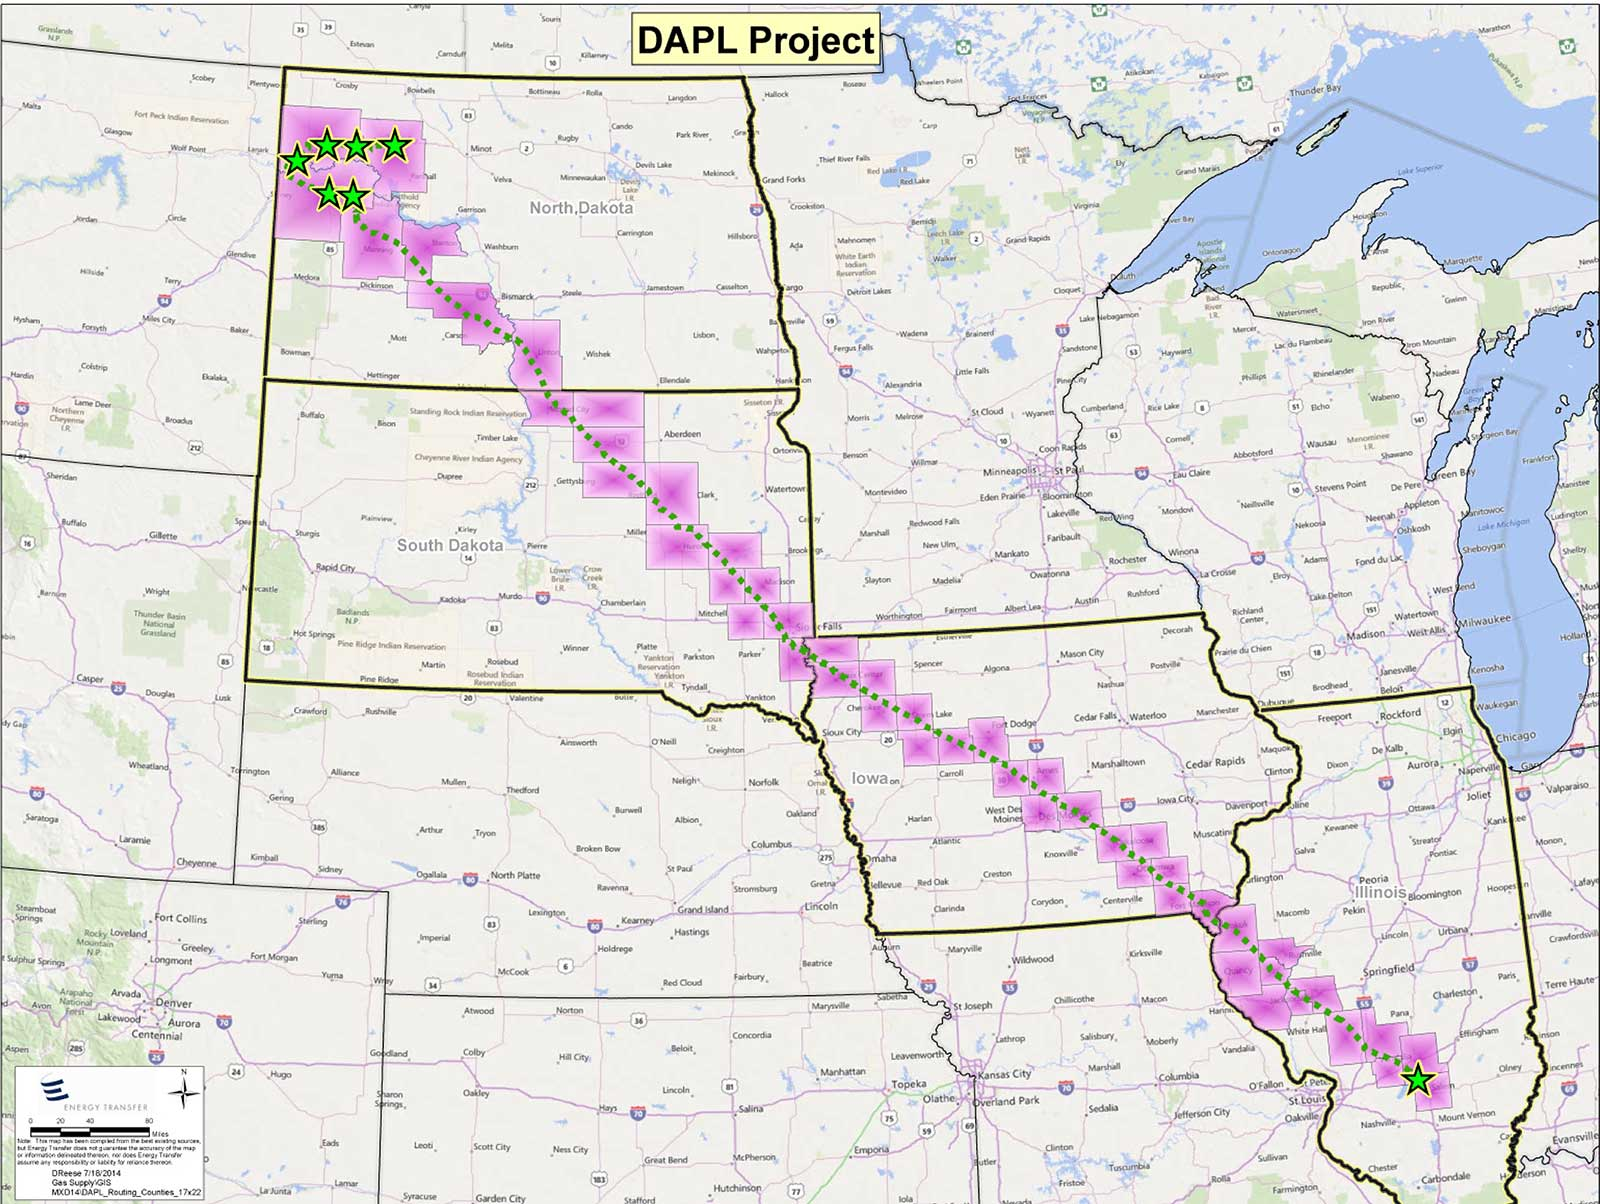 DAPL Project Map